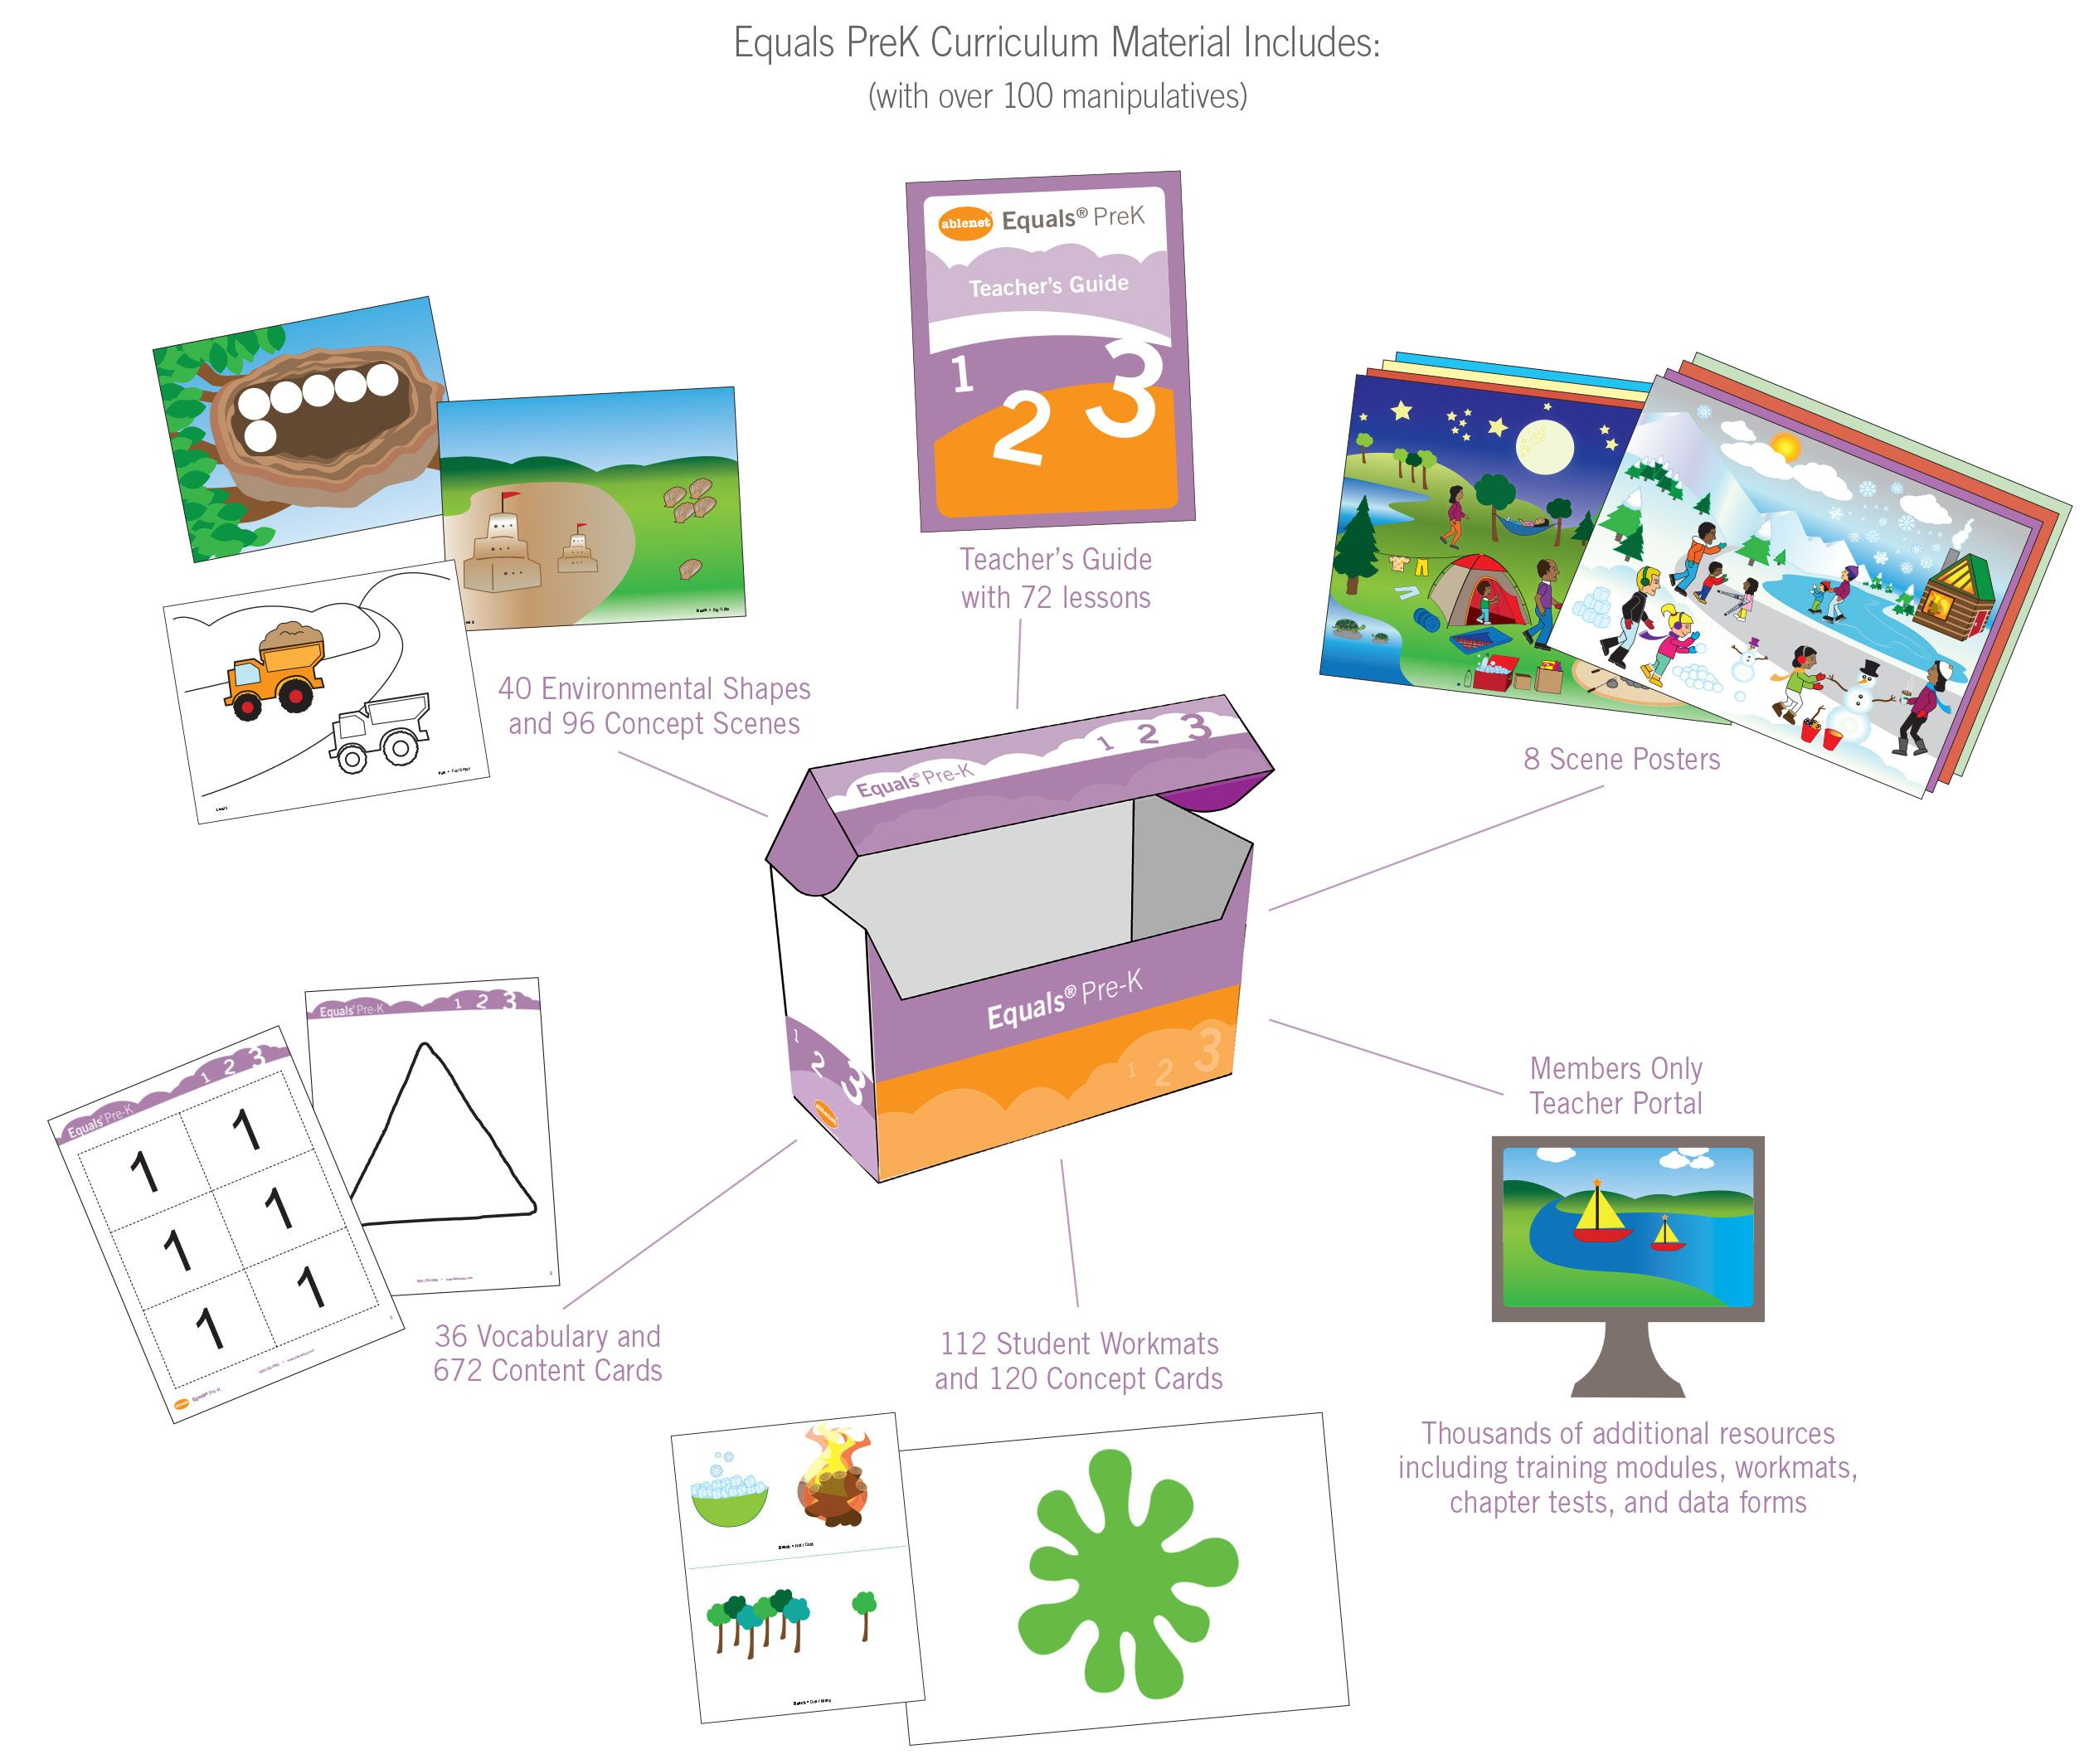 Equals PreK Content Kit - Math Curriculum for little kids by AbleNet ...